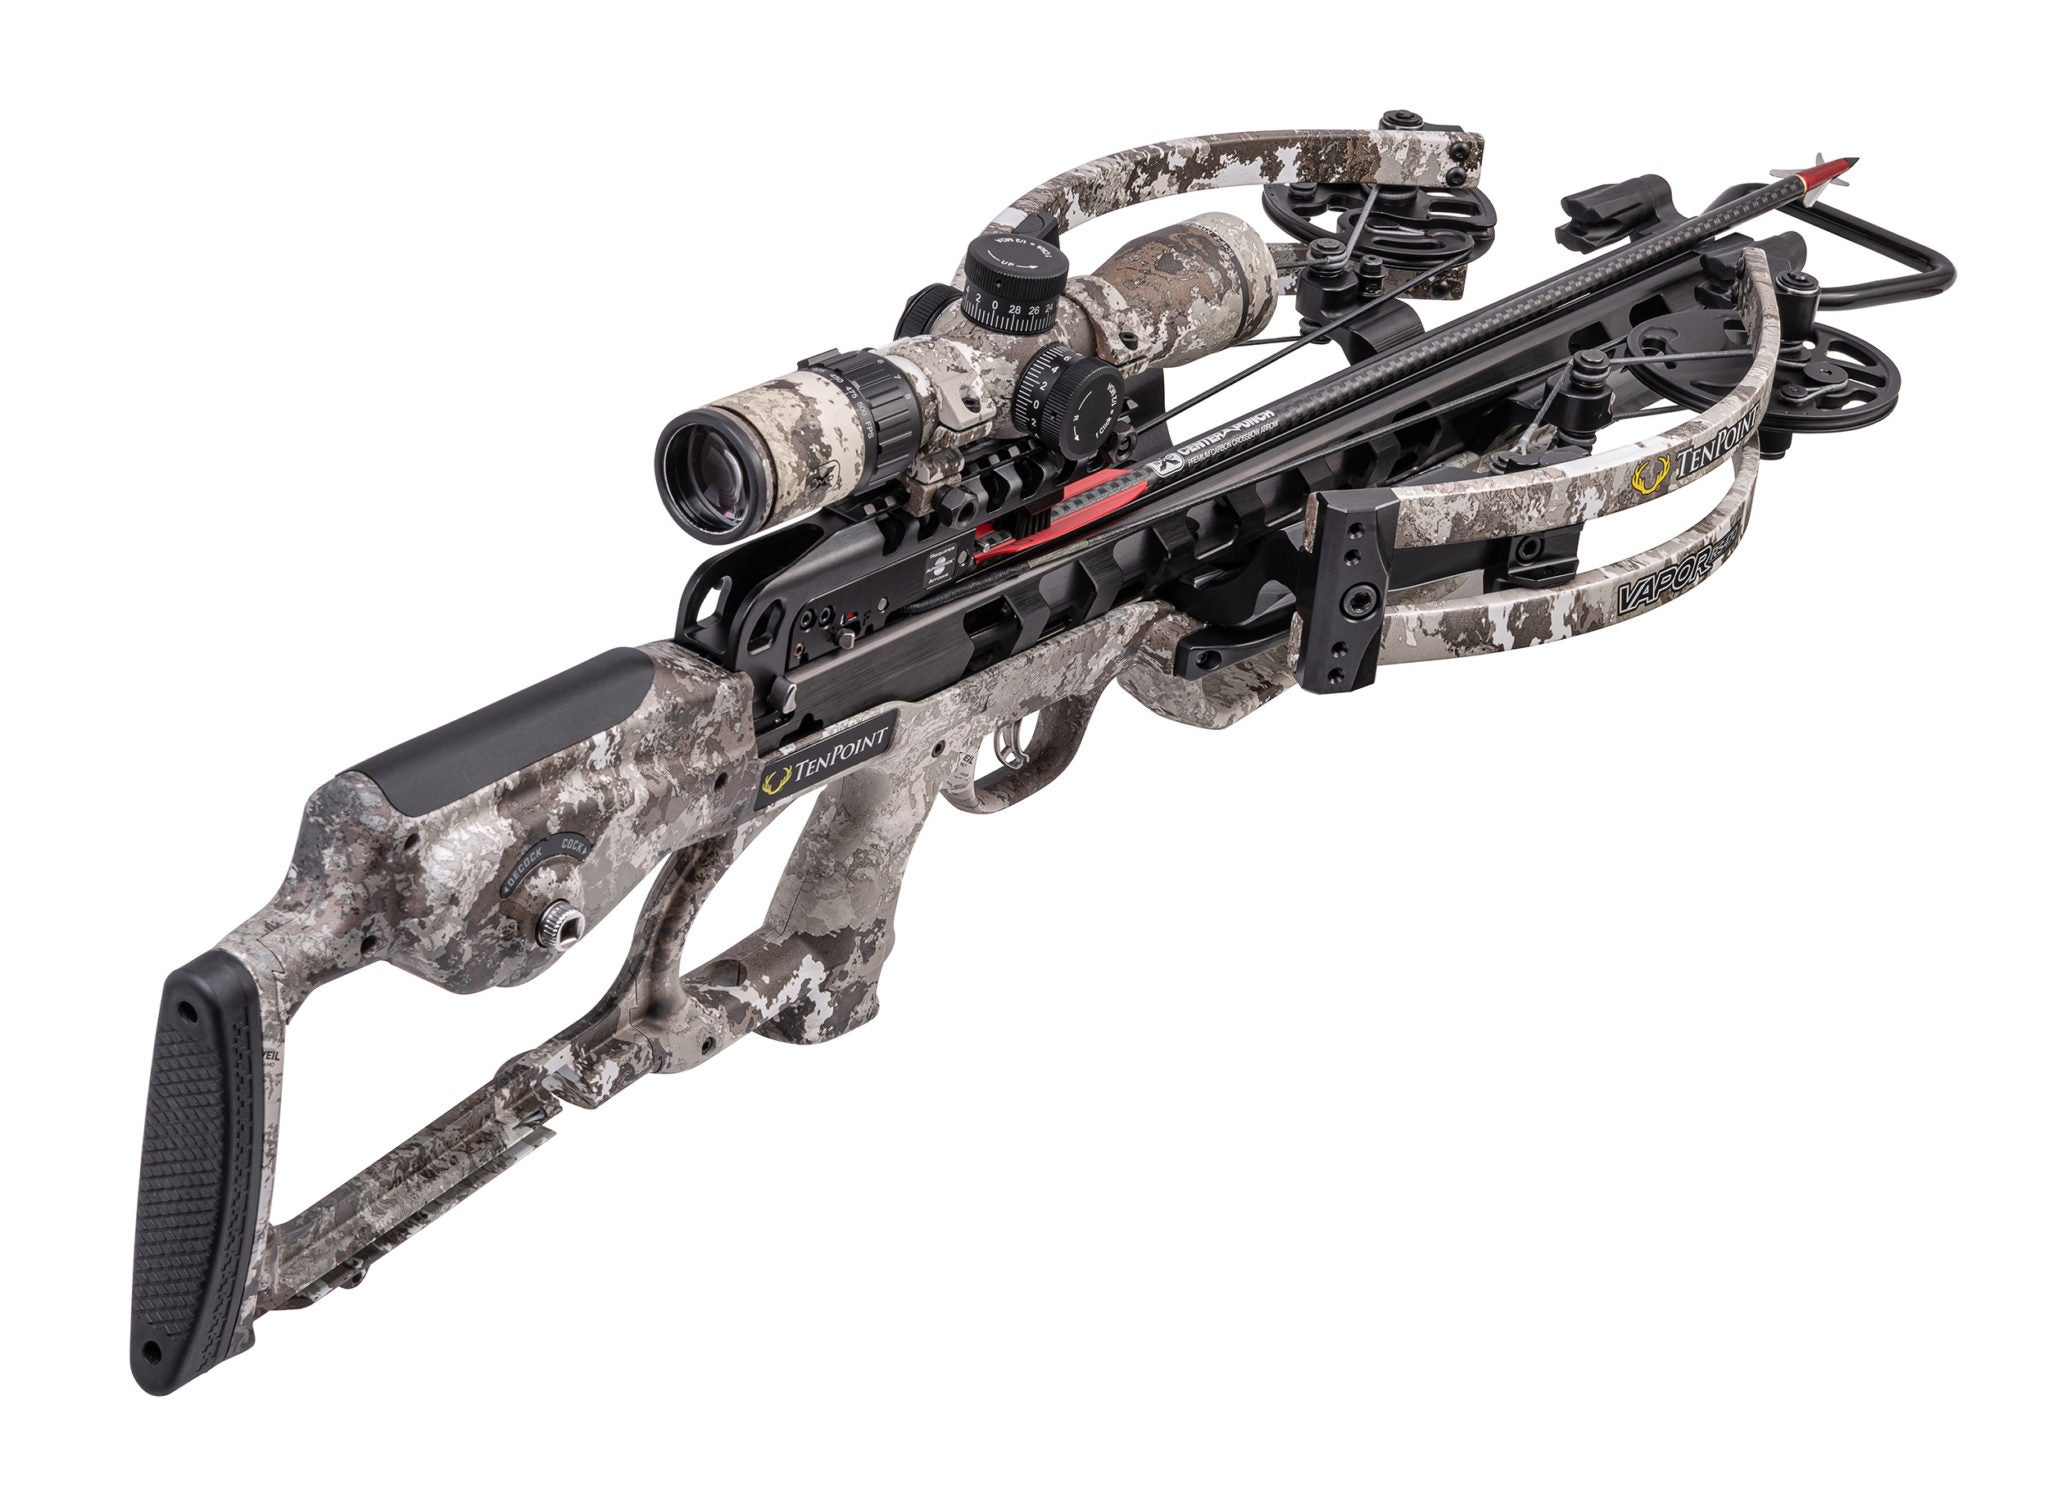 The TenPoint Vapor RS470 is the fastest crossbow from TenPoint.